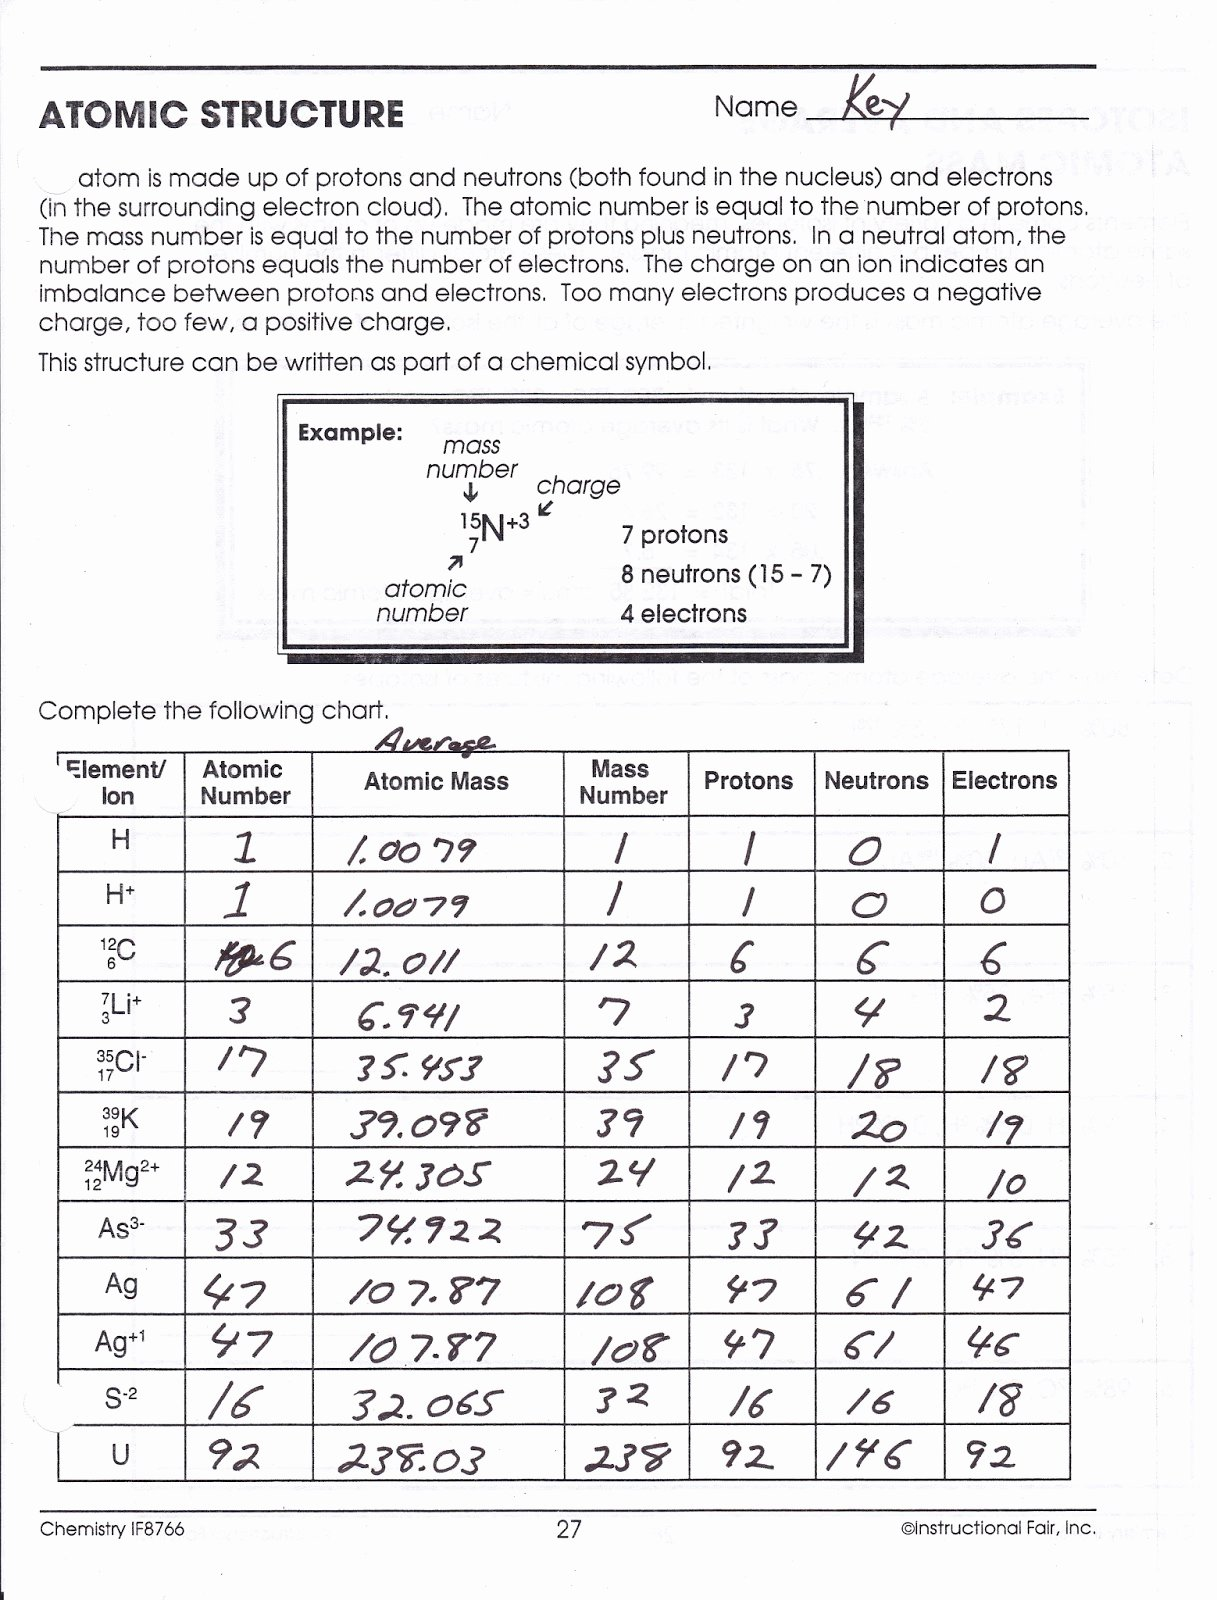 Atomic Structure Worksheet Answers Best Of atomic Structure Worksheet Answer Key the Best Worksheets